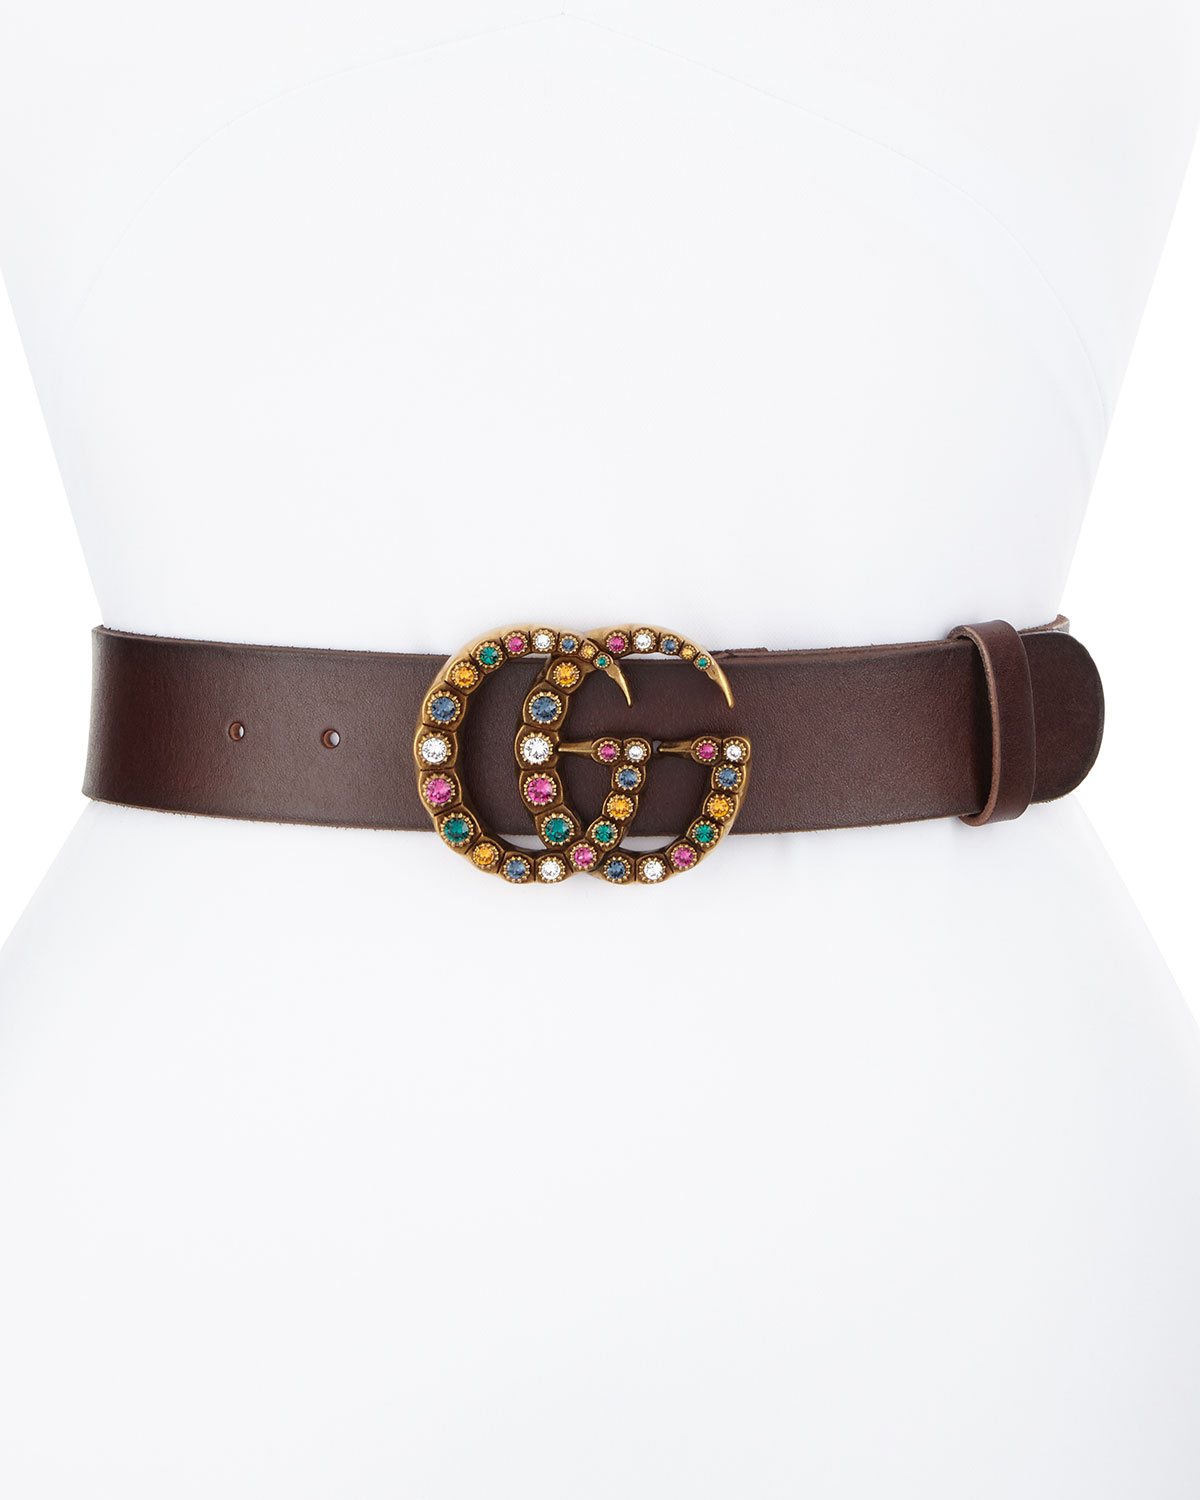 a7b69f9f750 Gucci Leather Belt w  Crystal Double G Buckle